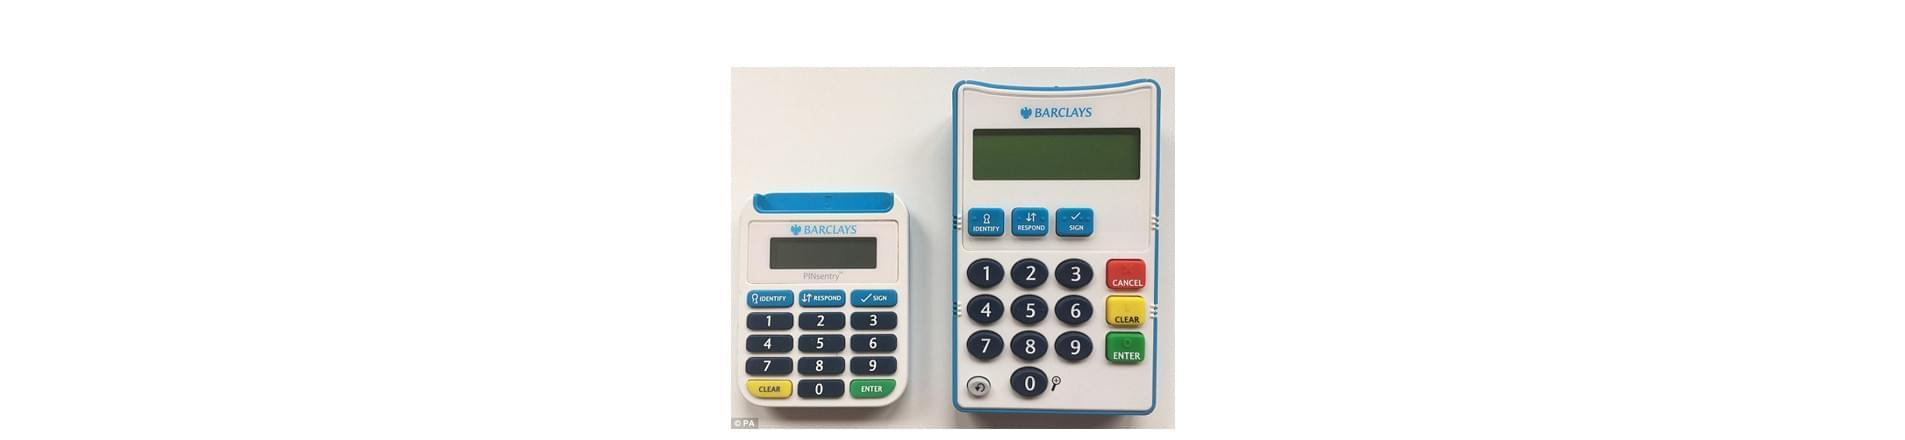 Barclays card readers: usual size card reader on the left with new larger version on the right